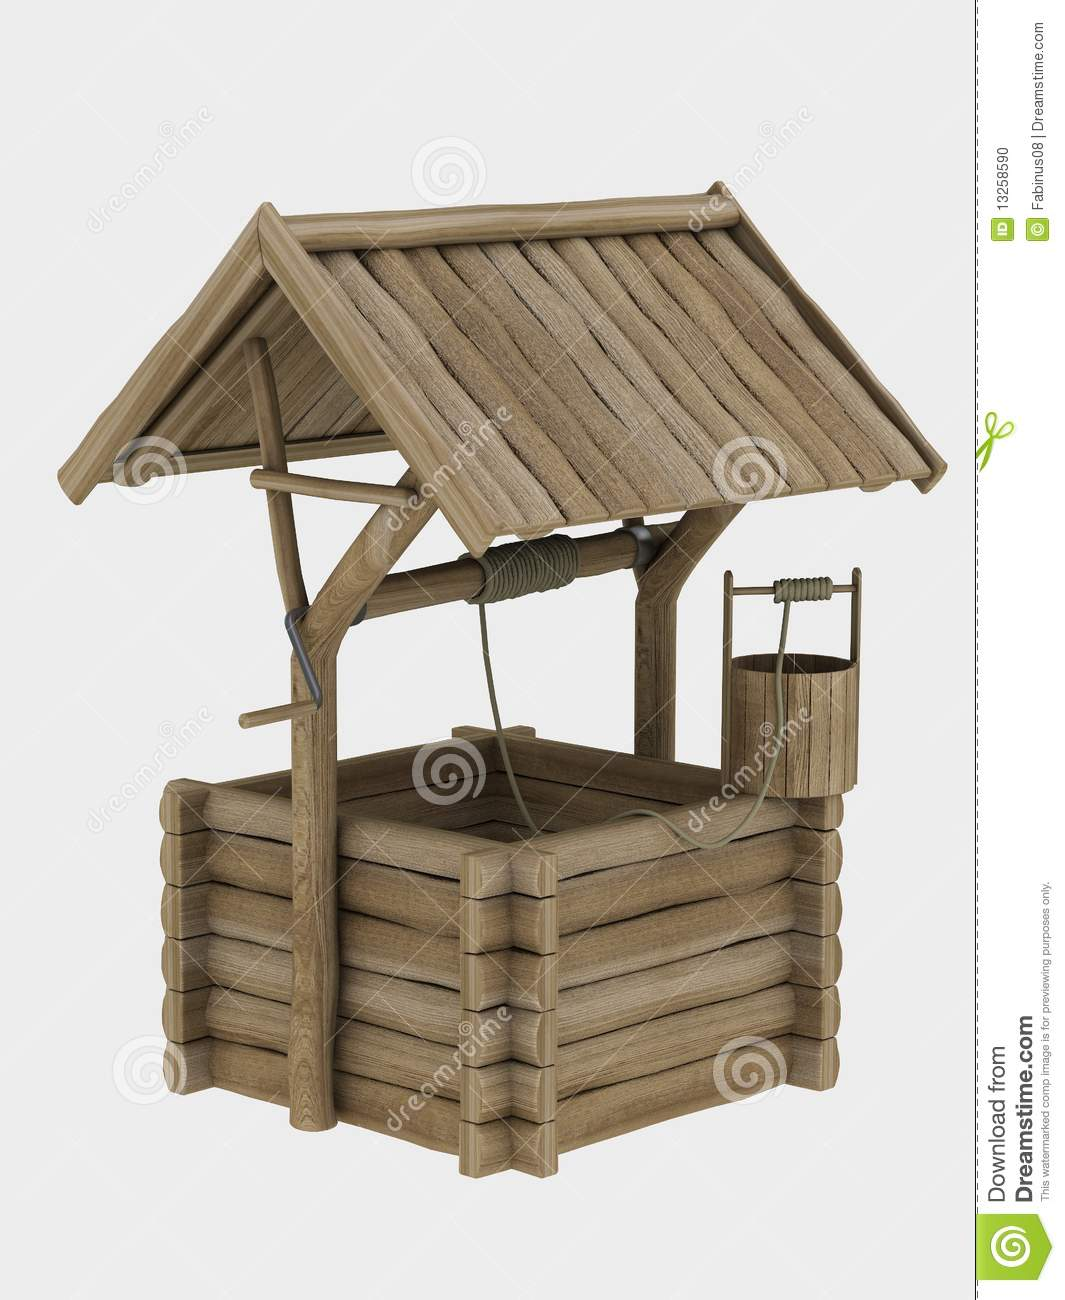 Puits en bois d coratif photo stock image 13258590 for Puits decoratif jardin